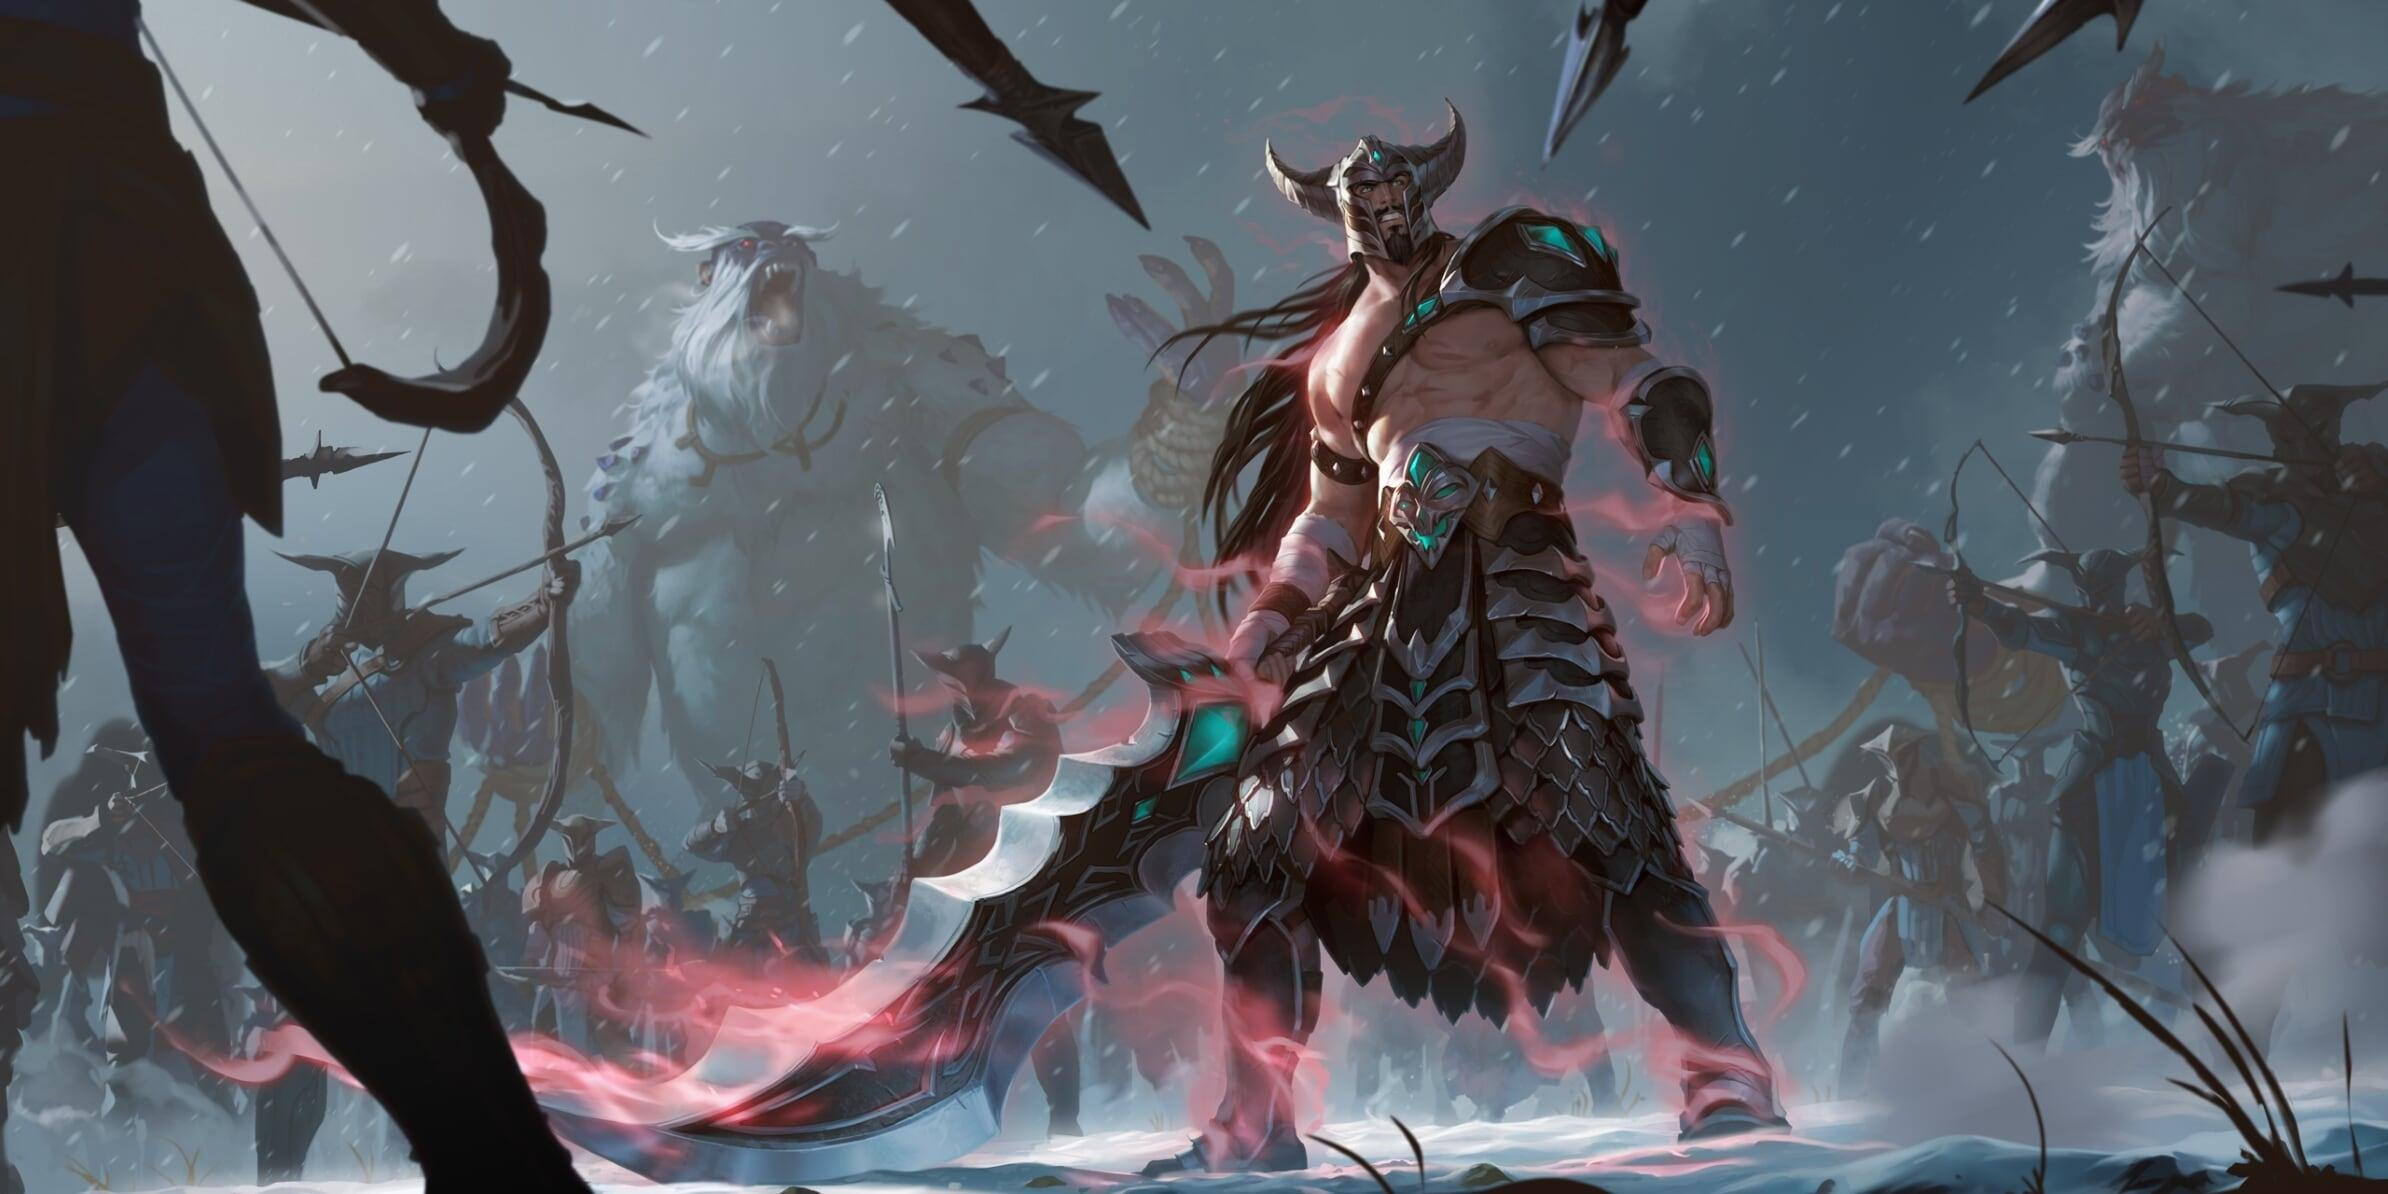 Legends of Runeterra could give Hearthstone and Magic: Arena a run for their money